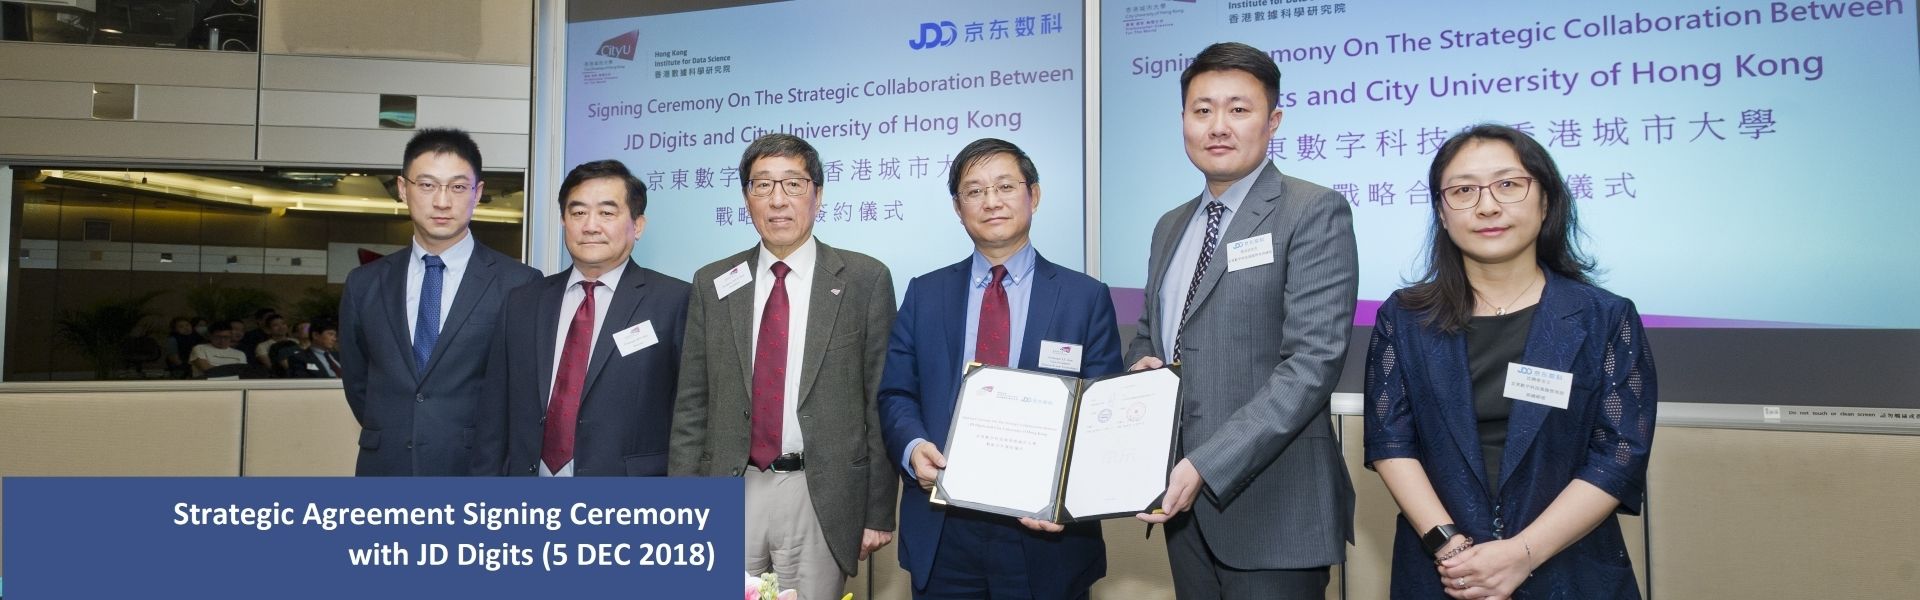 Strategic Agreement Signing Ceremony with JD Digits